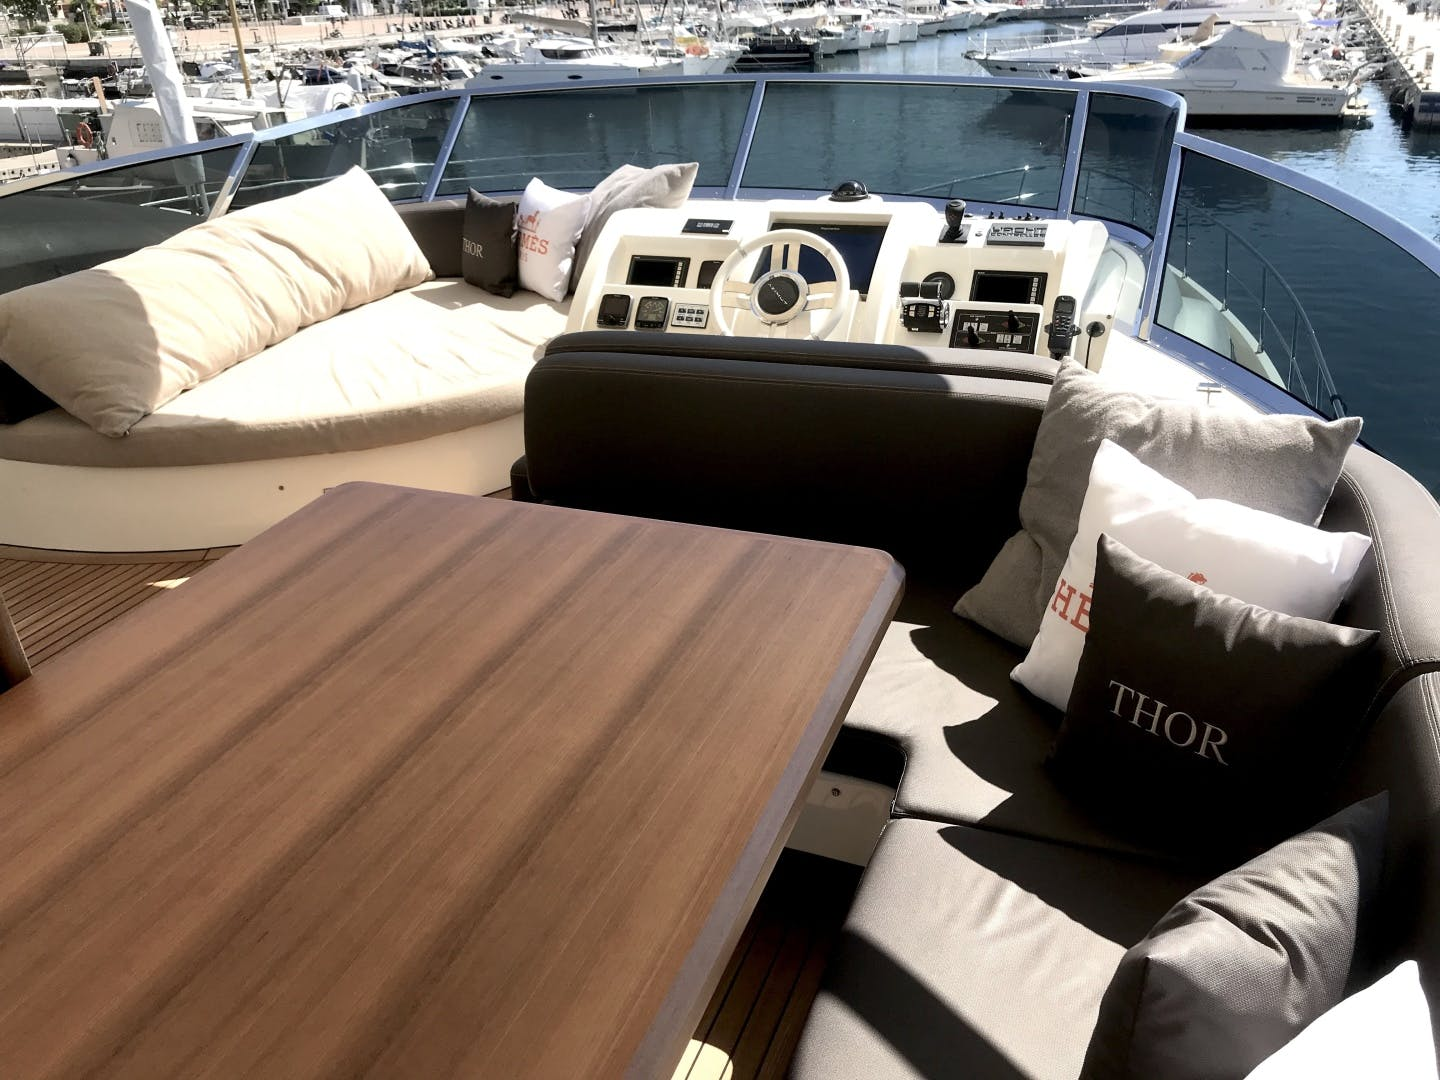 2013 Azimut 74' 78' THOR | Picture 5 of 15